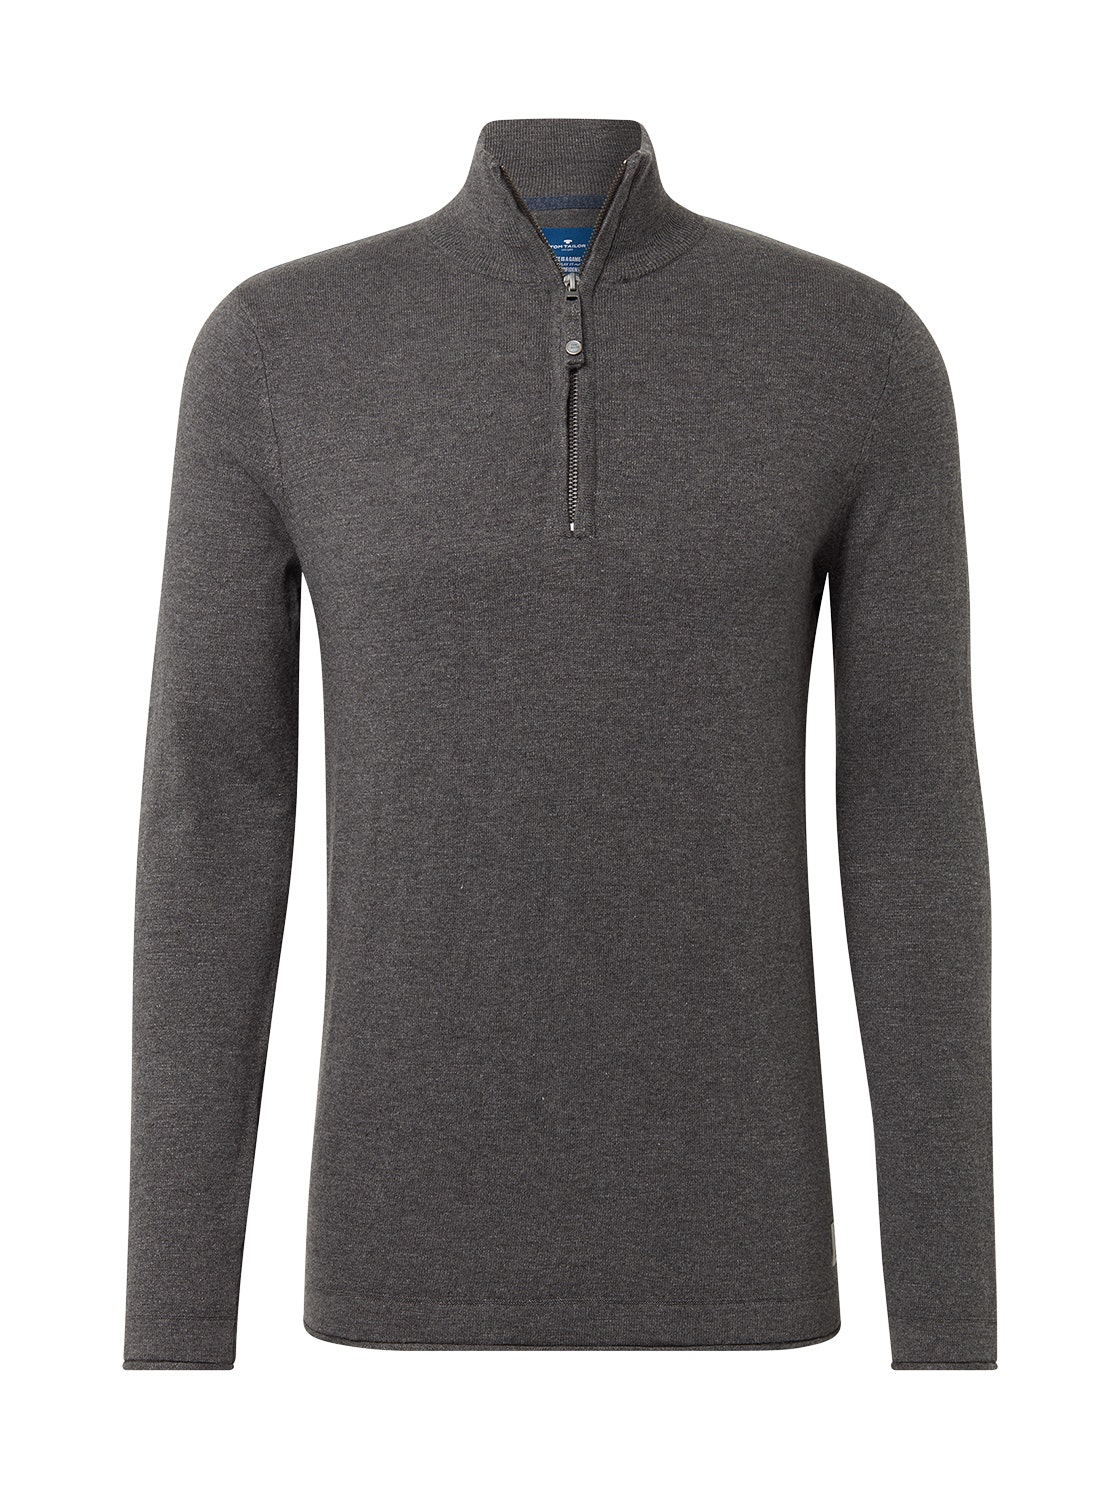 structured troyer, Cyber Grey                    Grey,